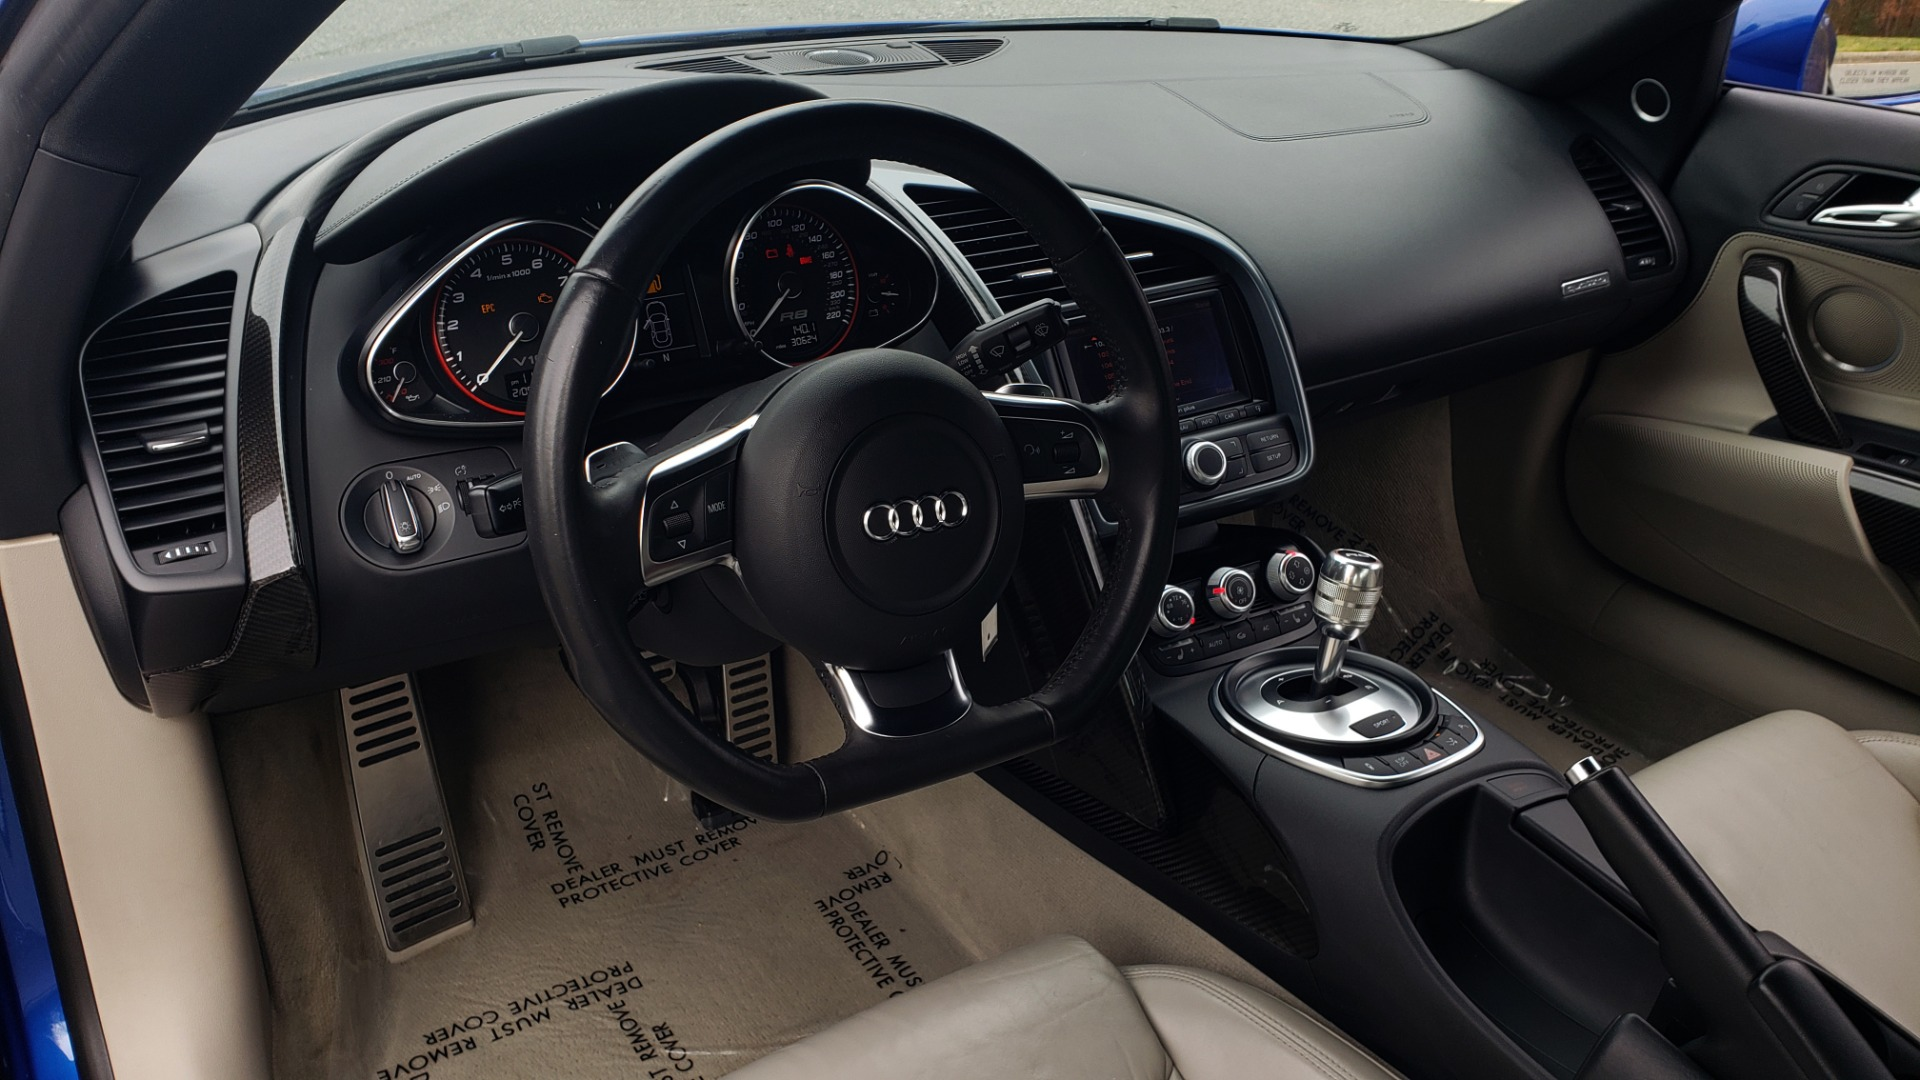 Used 2010 Audi R8 5.2L V10 / AWD / NAV / B&O SND / HTD STS / CUSTOM EXH & WHEELS for sale $78,000 at Formula Imports in Charlotte NC 28227 35